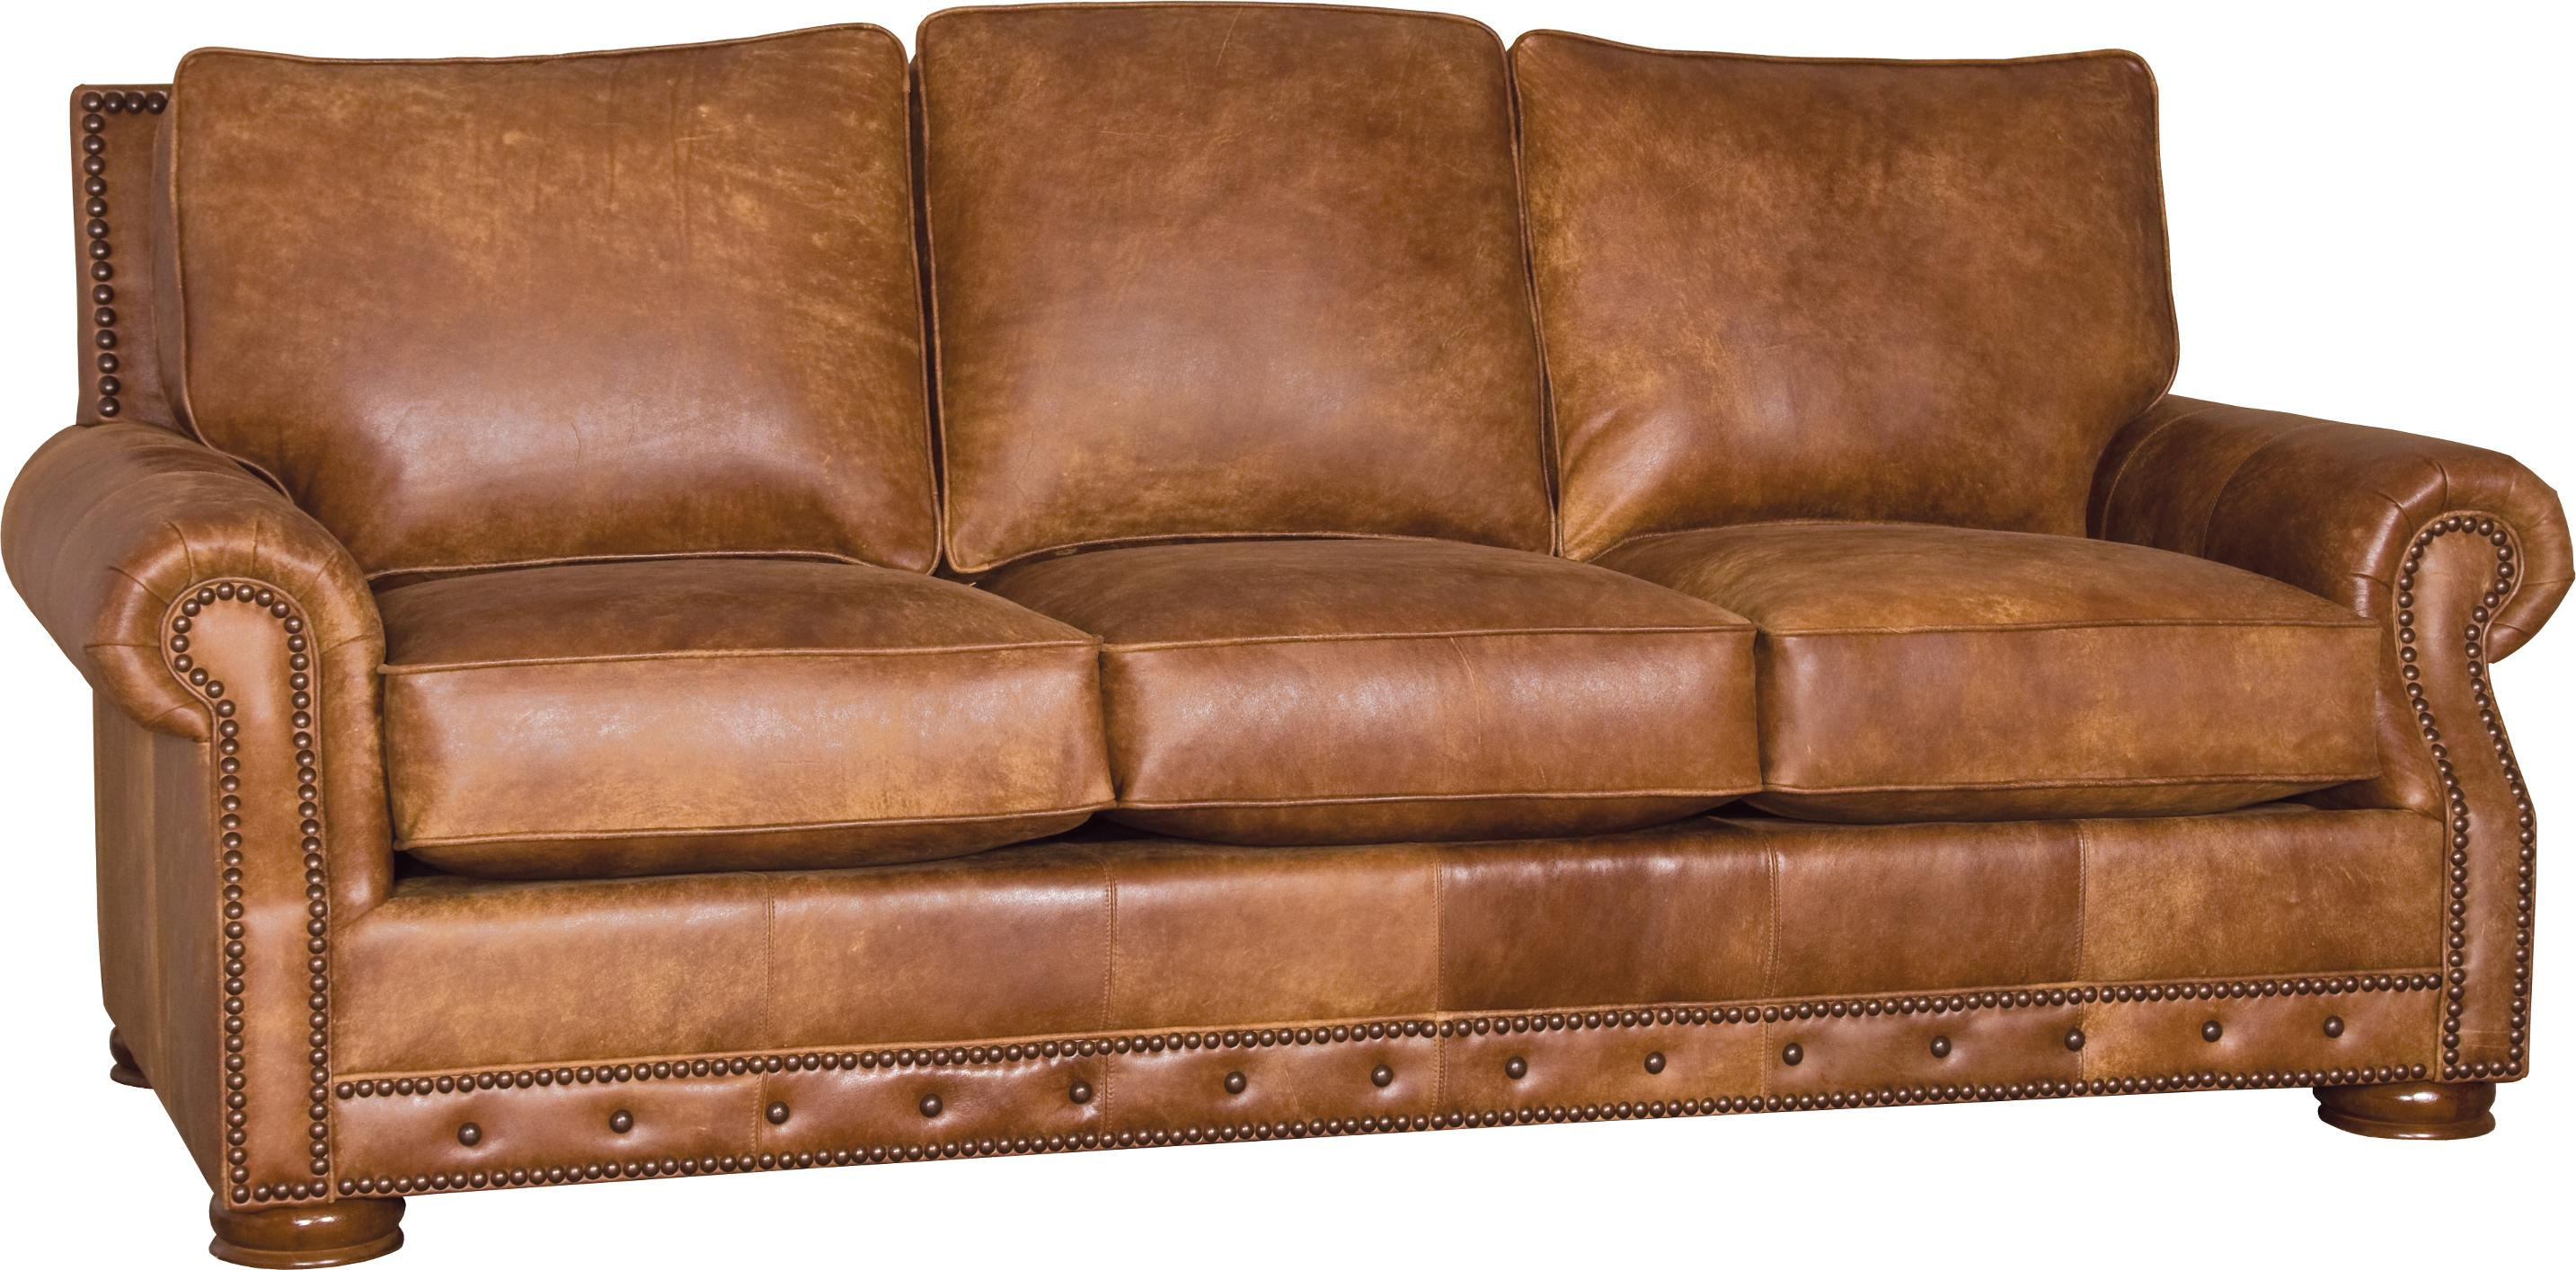 290 Traditional Sofa by Mayo at Wilcox Furniture